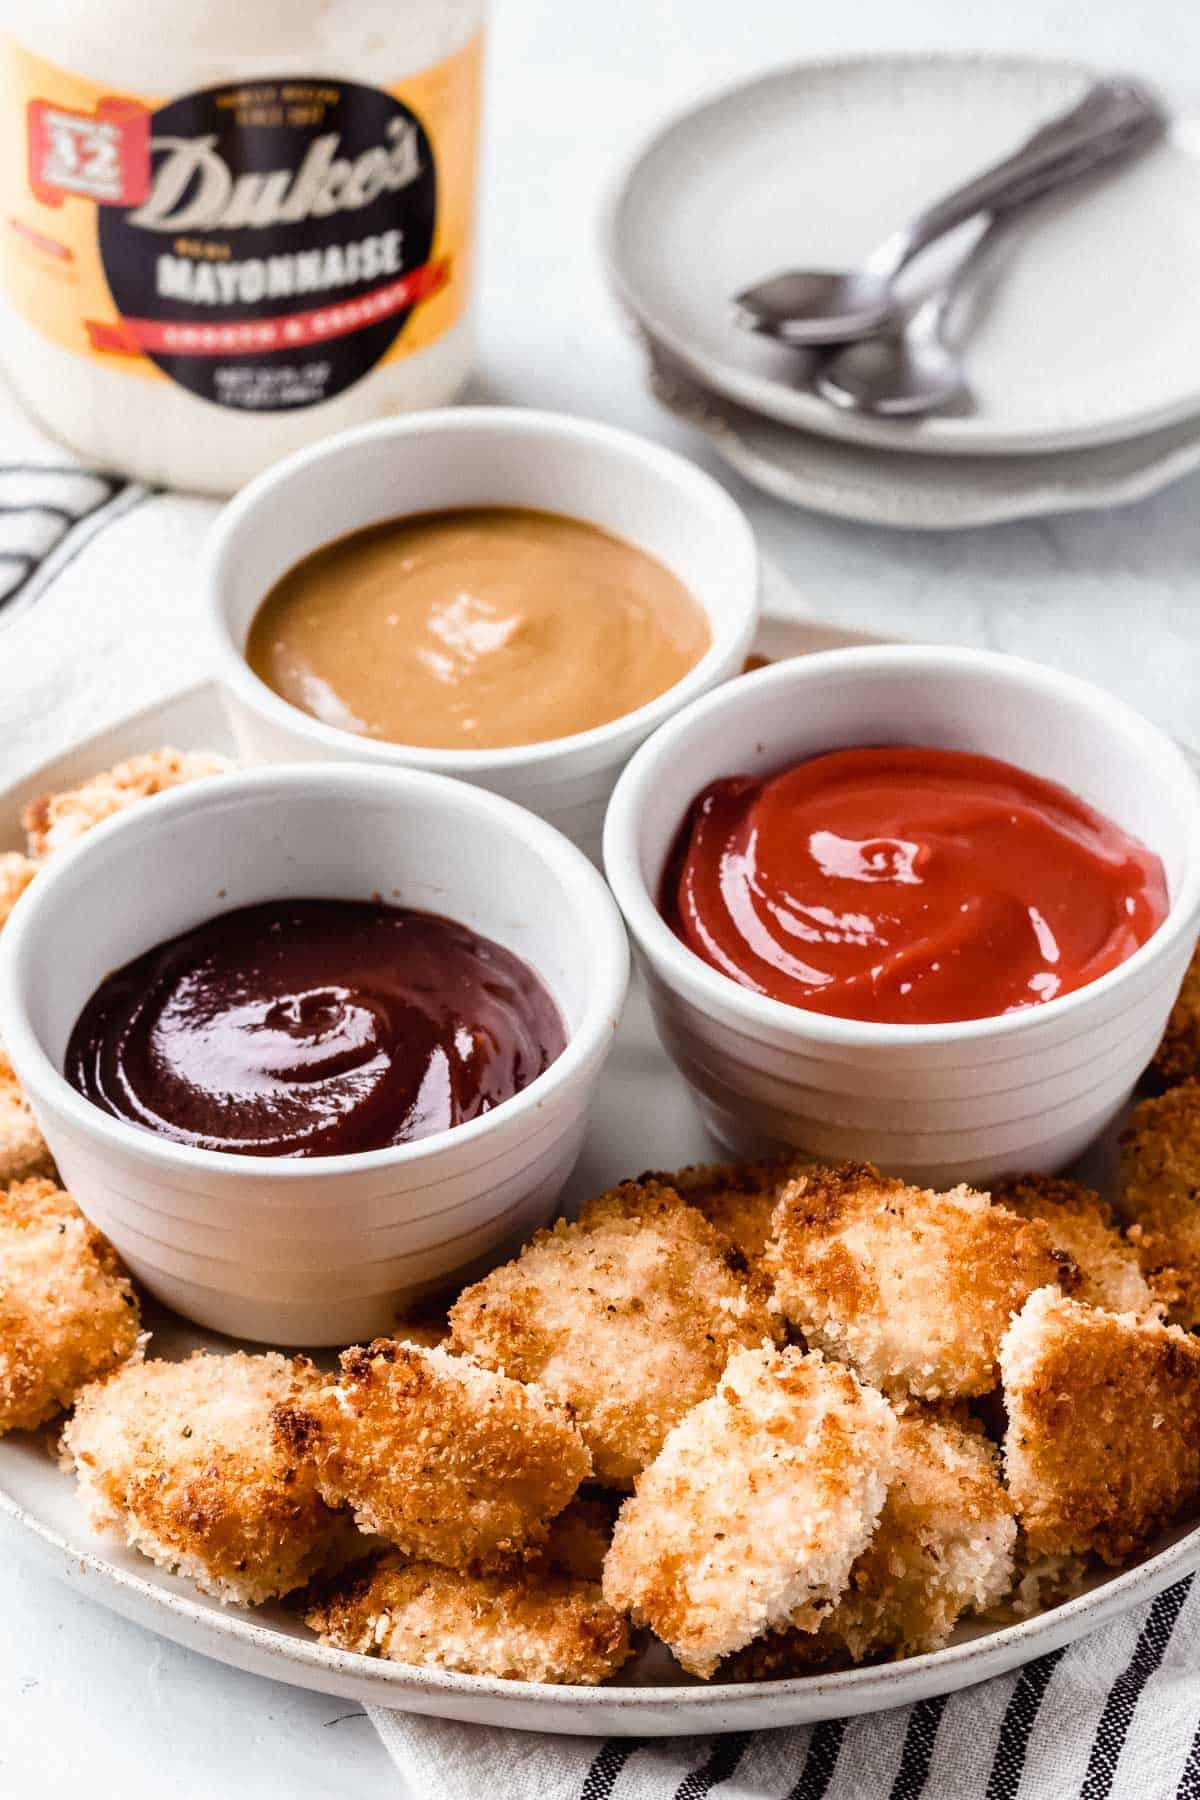 A plate of homemade chicken nuggets and dipping sauce with small plates, spoons, and Duke's mayonnaise in the background